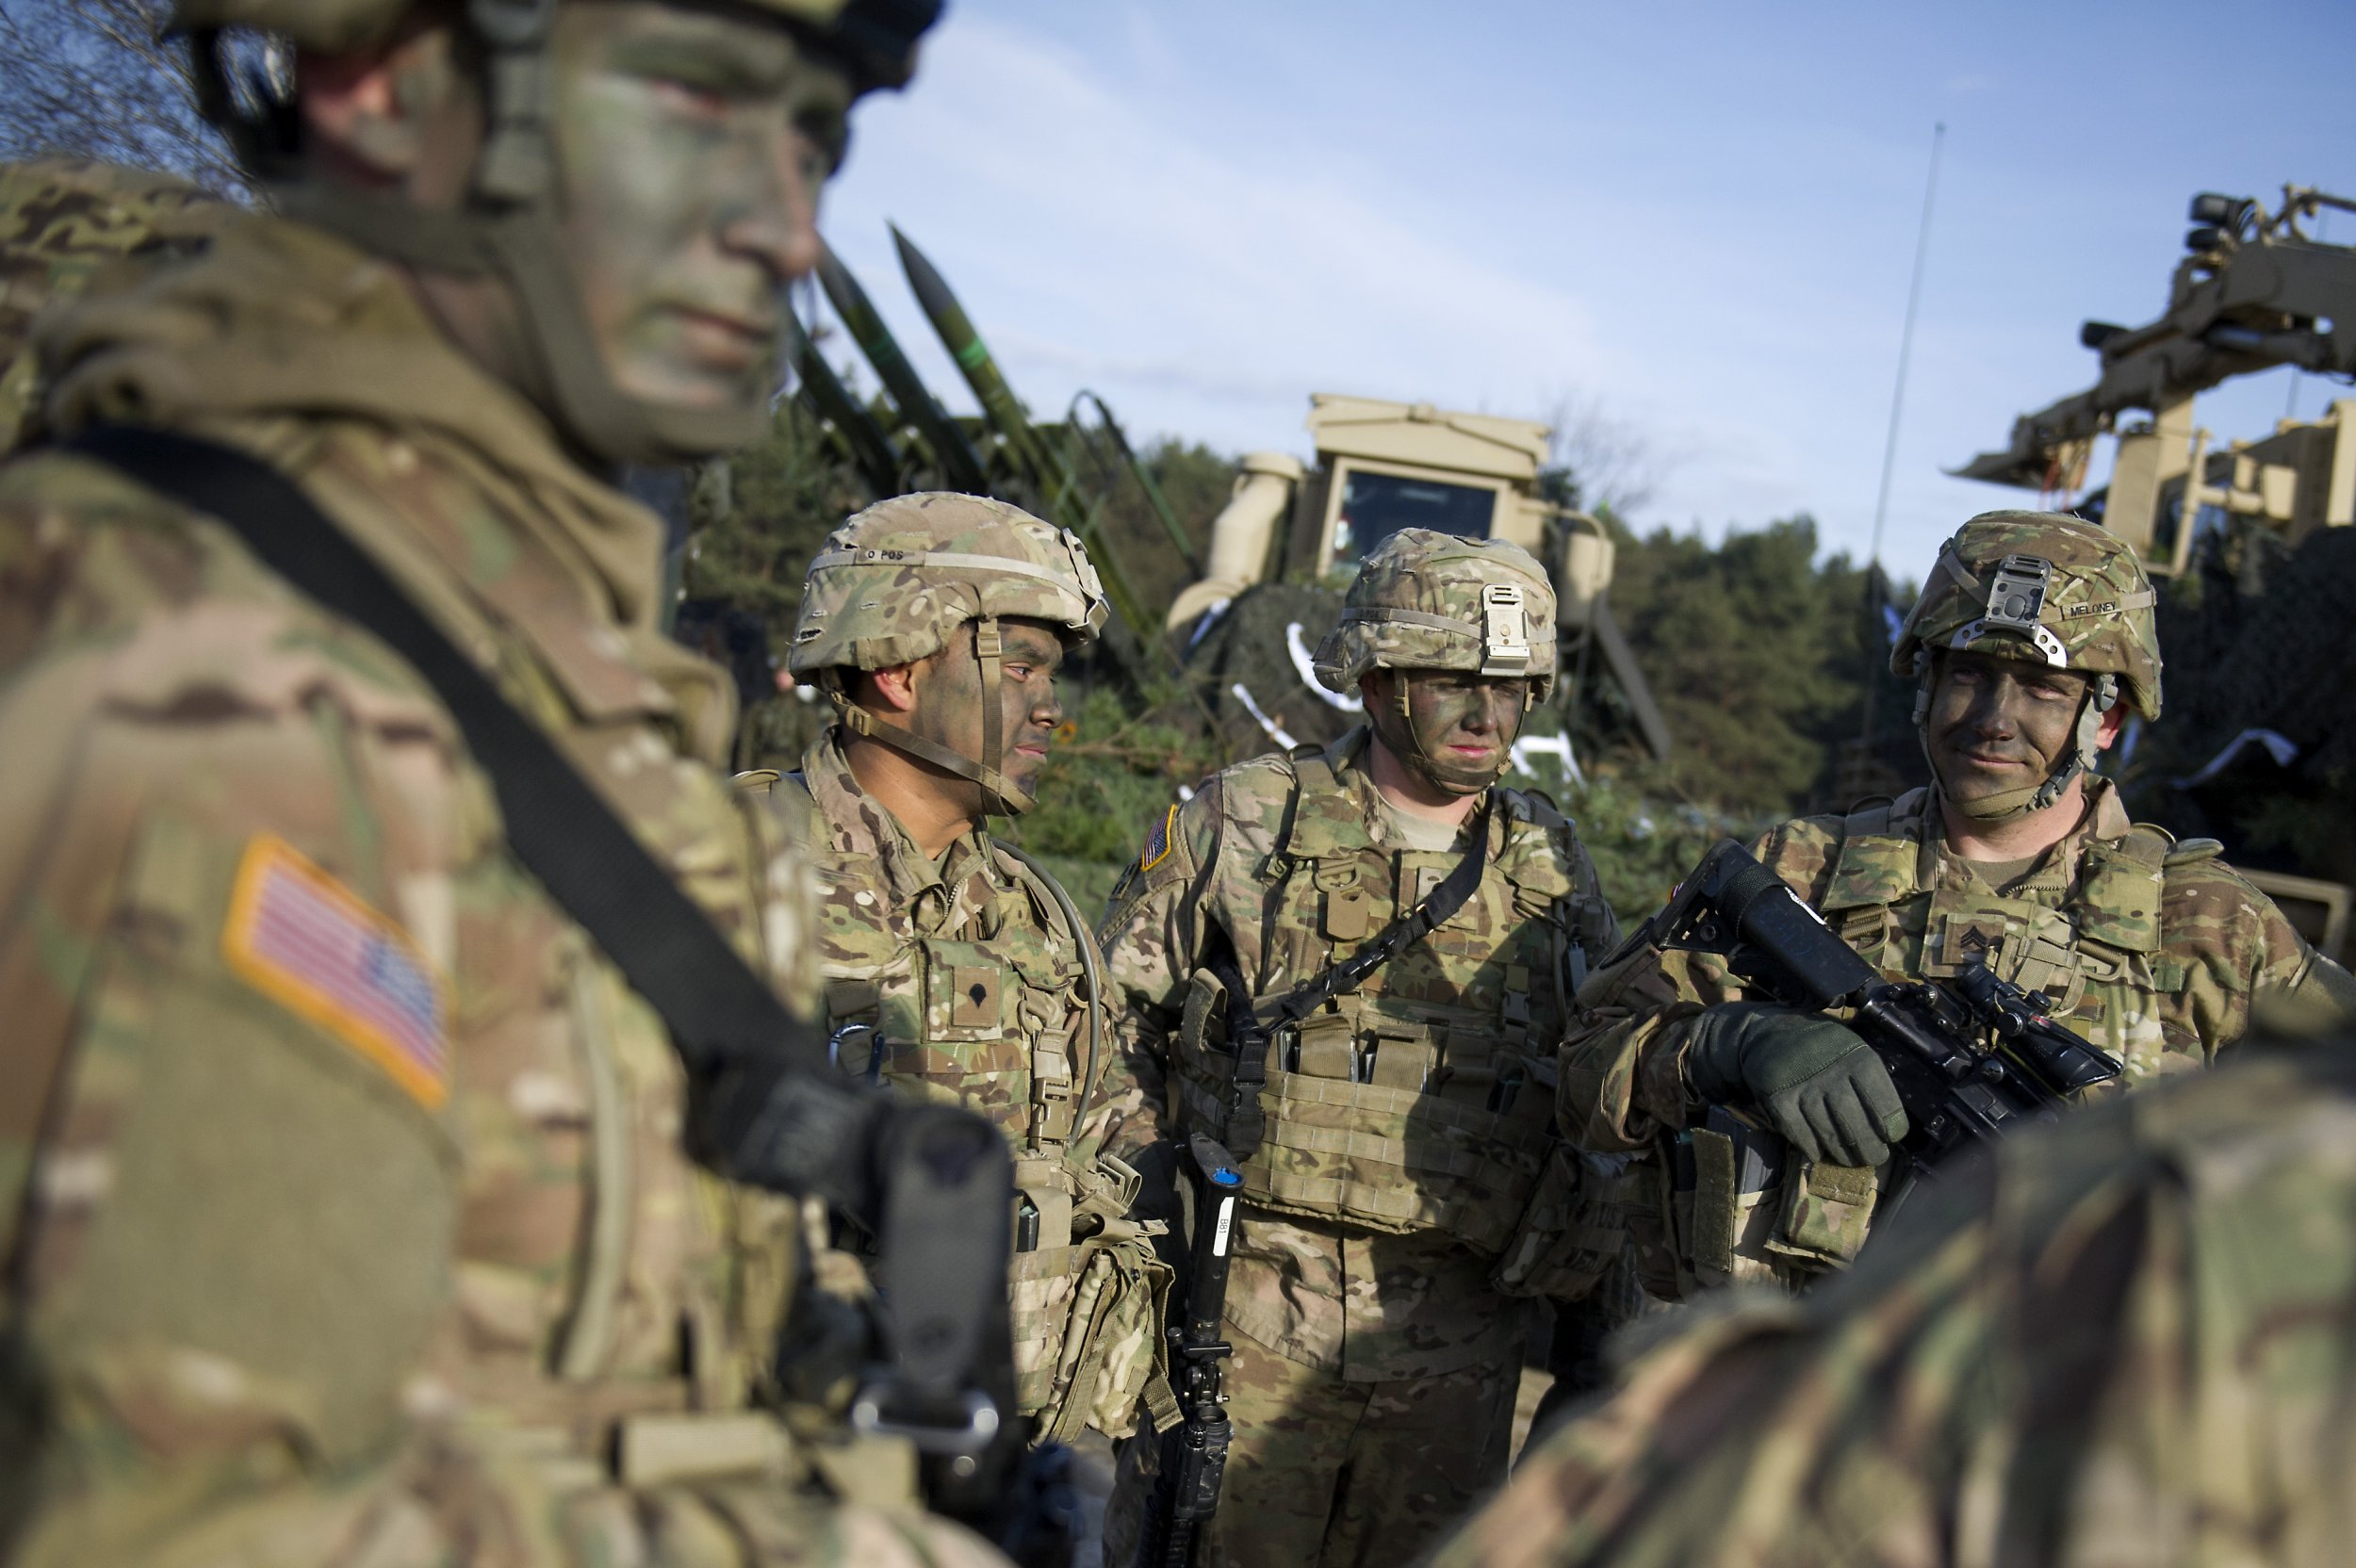 Will the U.S. Build Army Bases in Poland? The Poles Seem ...